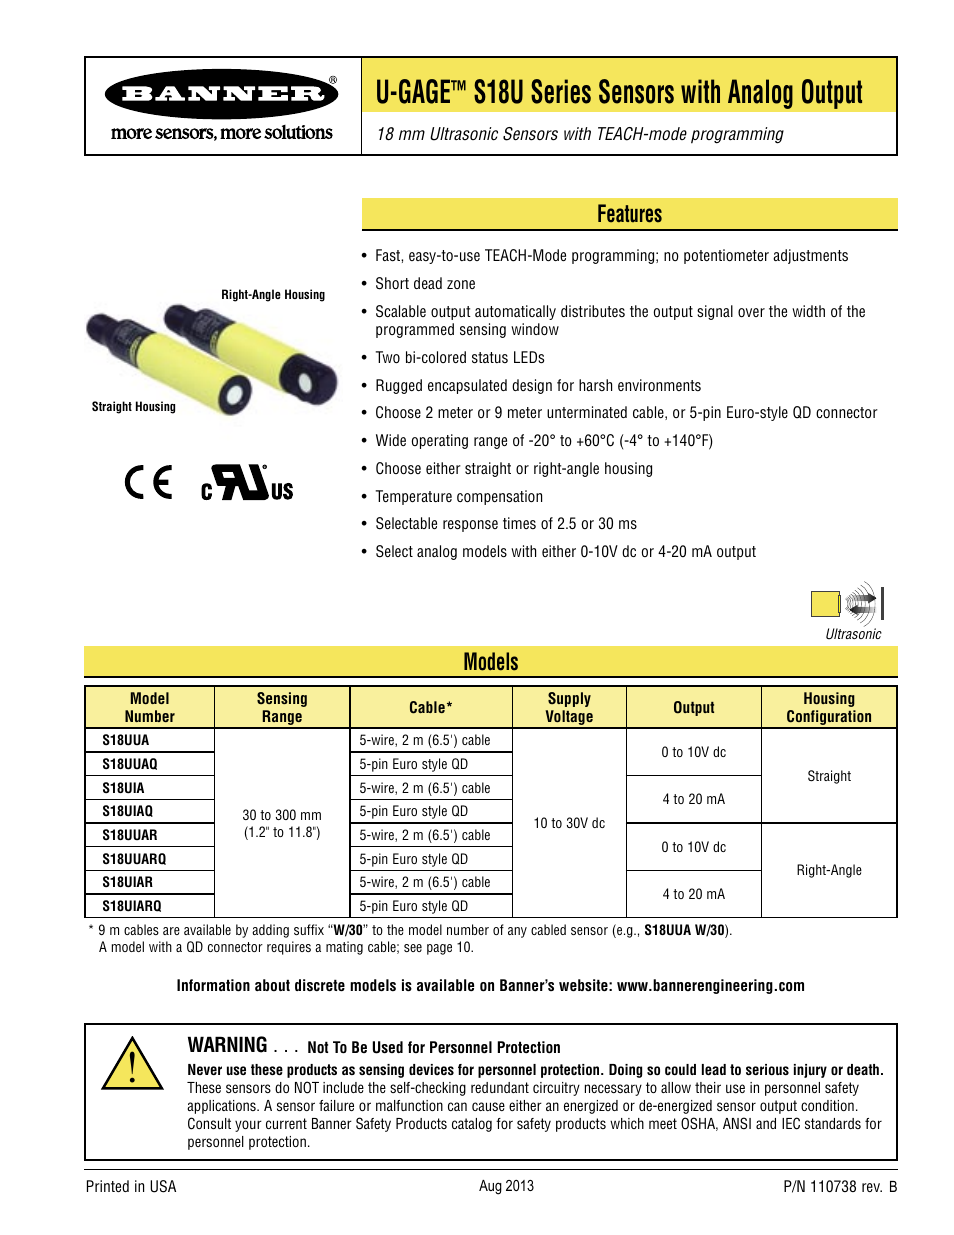 Banner U-GAGE S18U Series—Analog User Manual | 12 pages | Also for ...